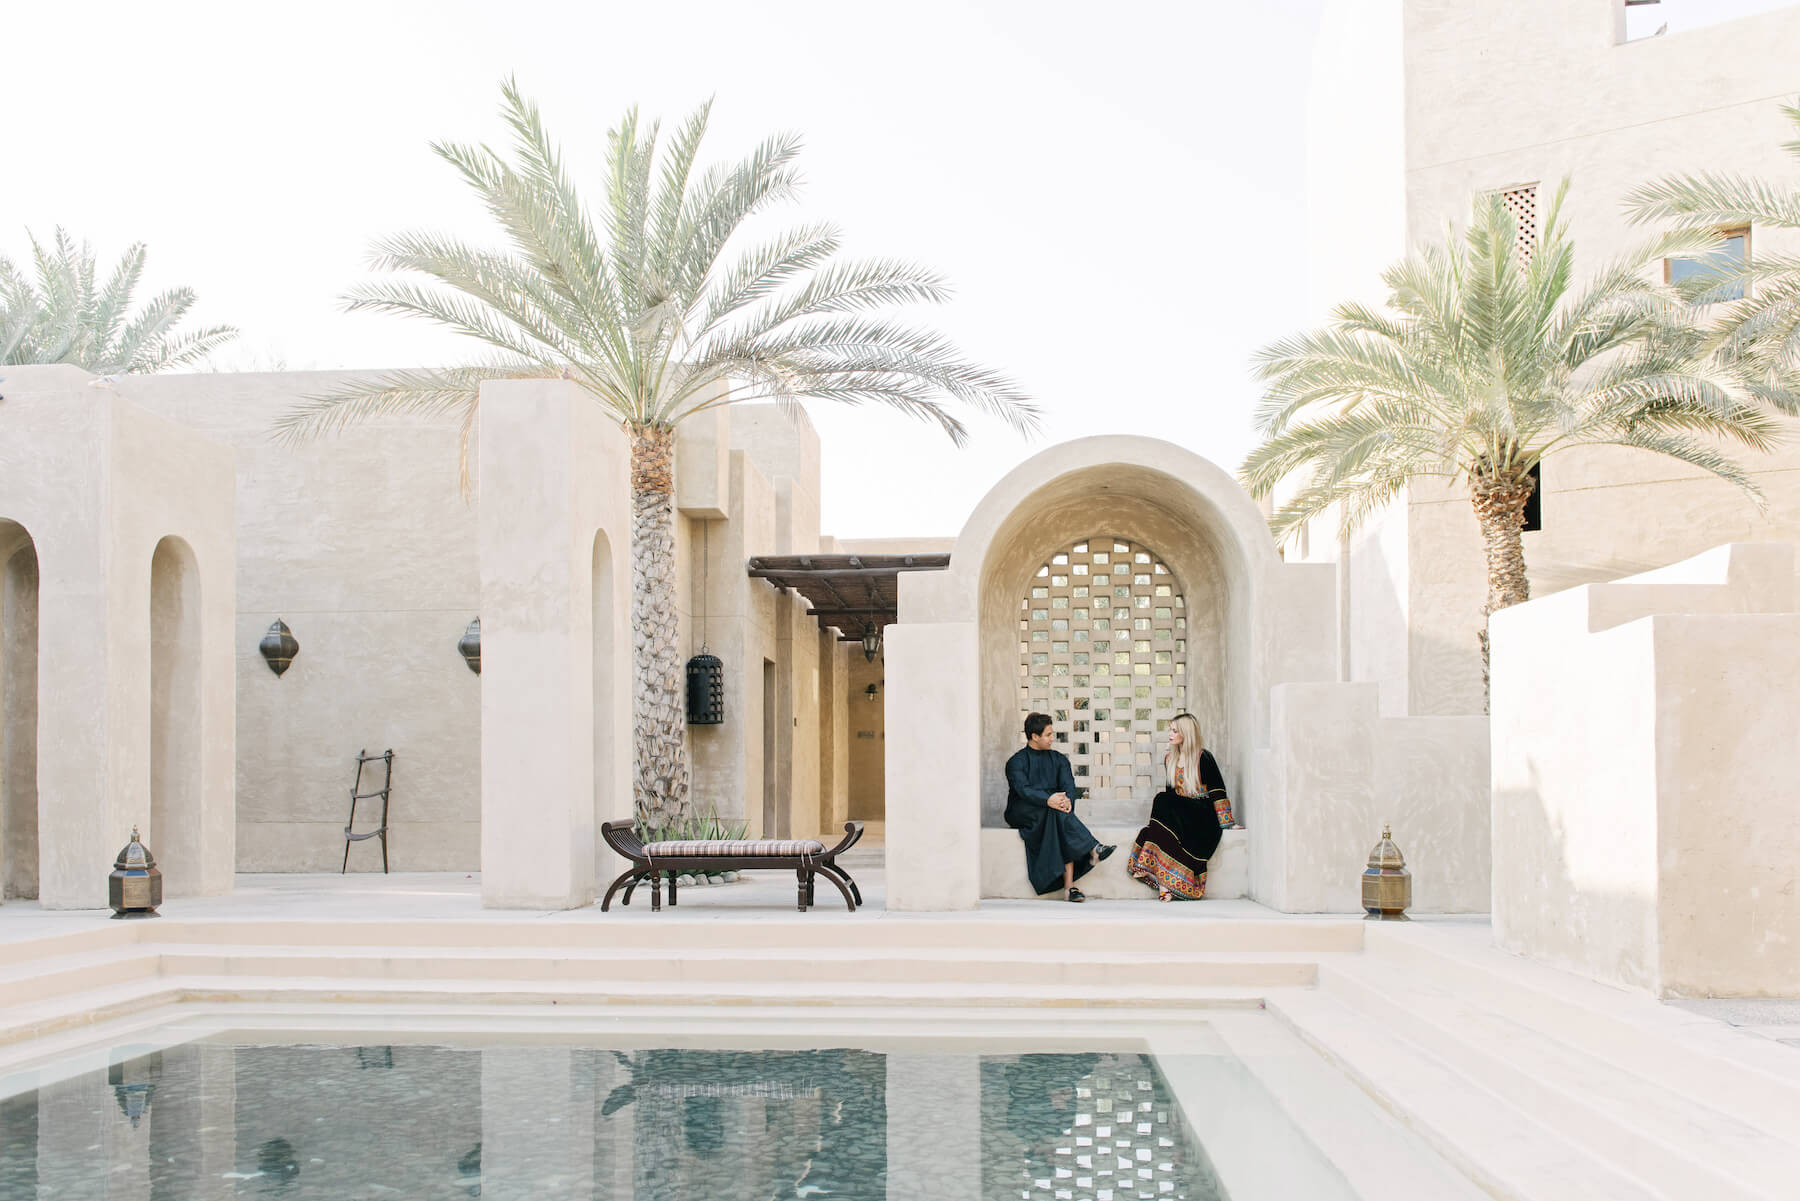 Couple sitting together in an outdoor space beside a pool at the Dubai Desert Conservation Reserve